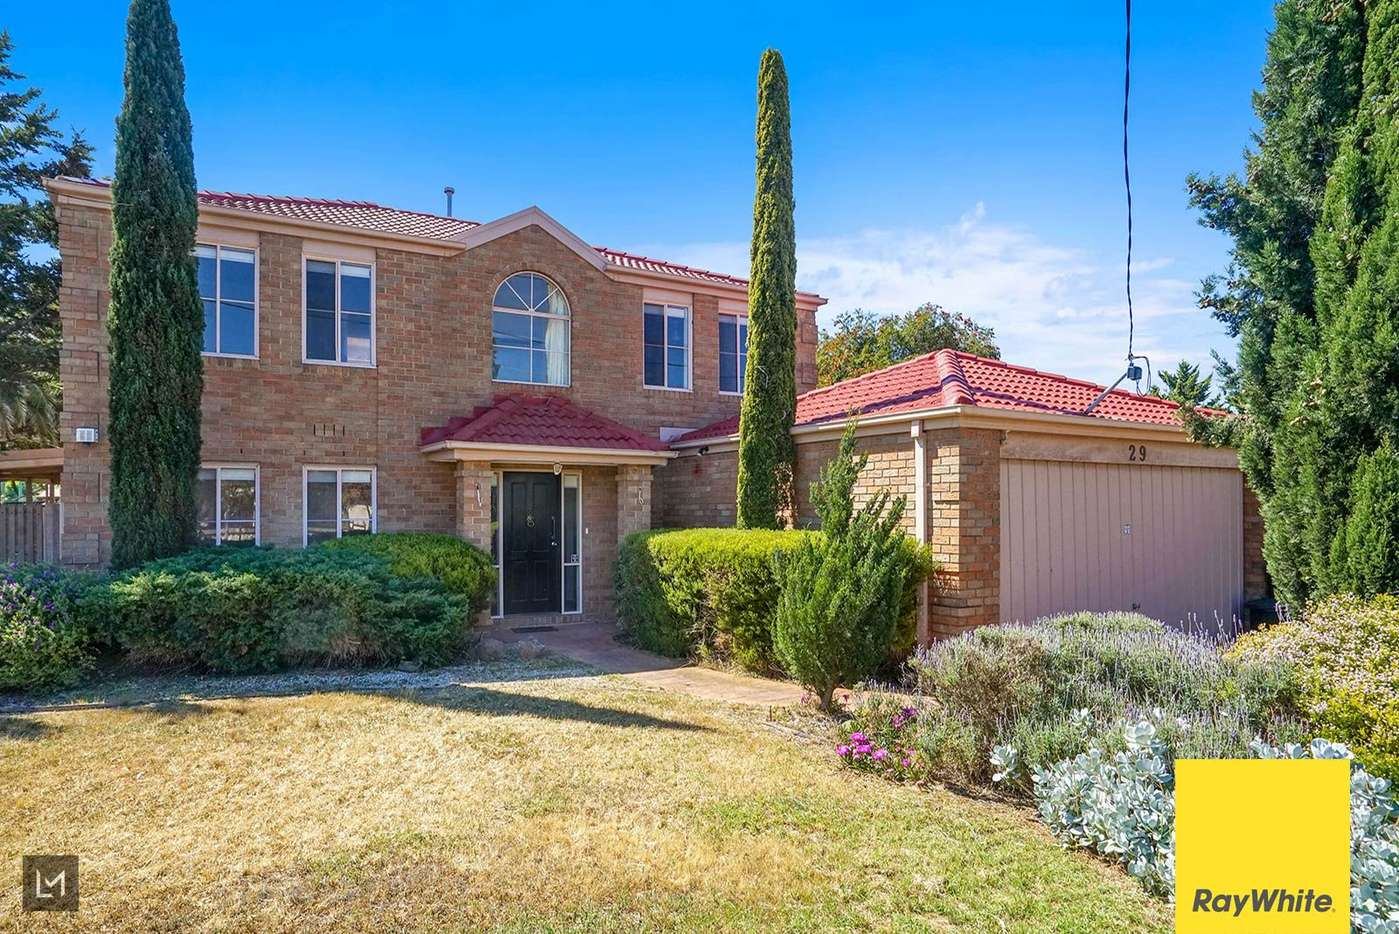 Main view of Homely house listing, 29 Maple Crescent, Hoppers Crossing, VIC 3029